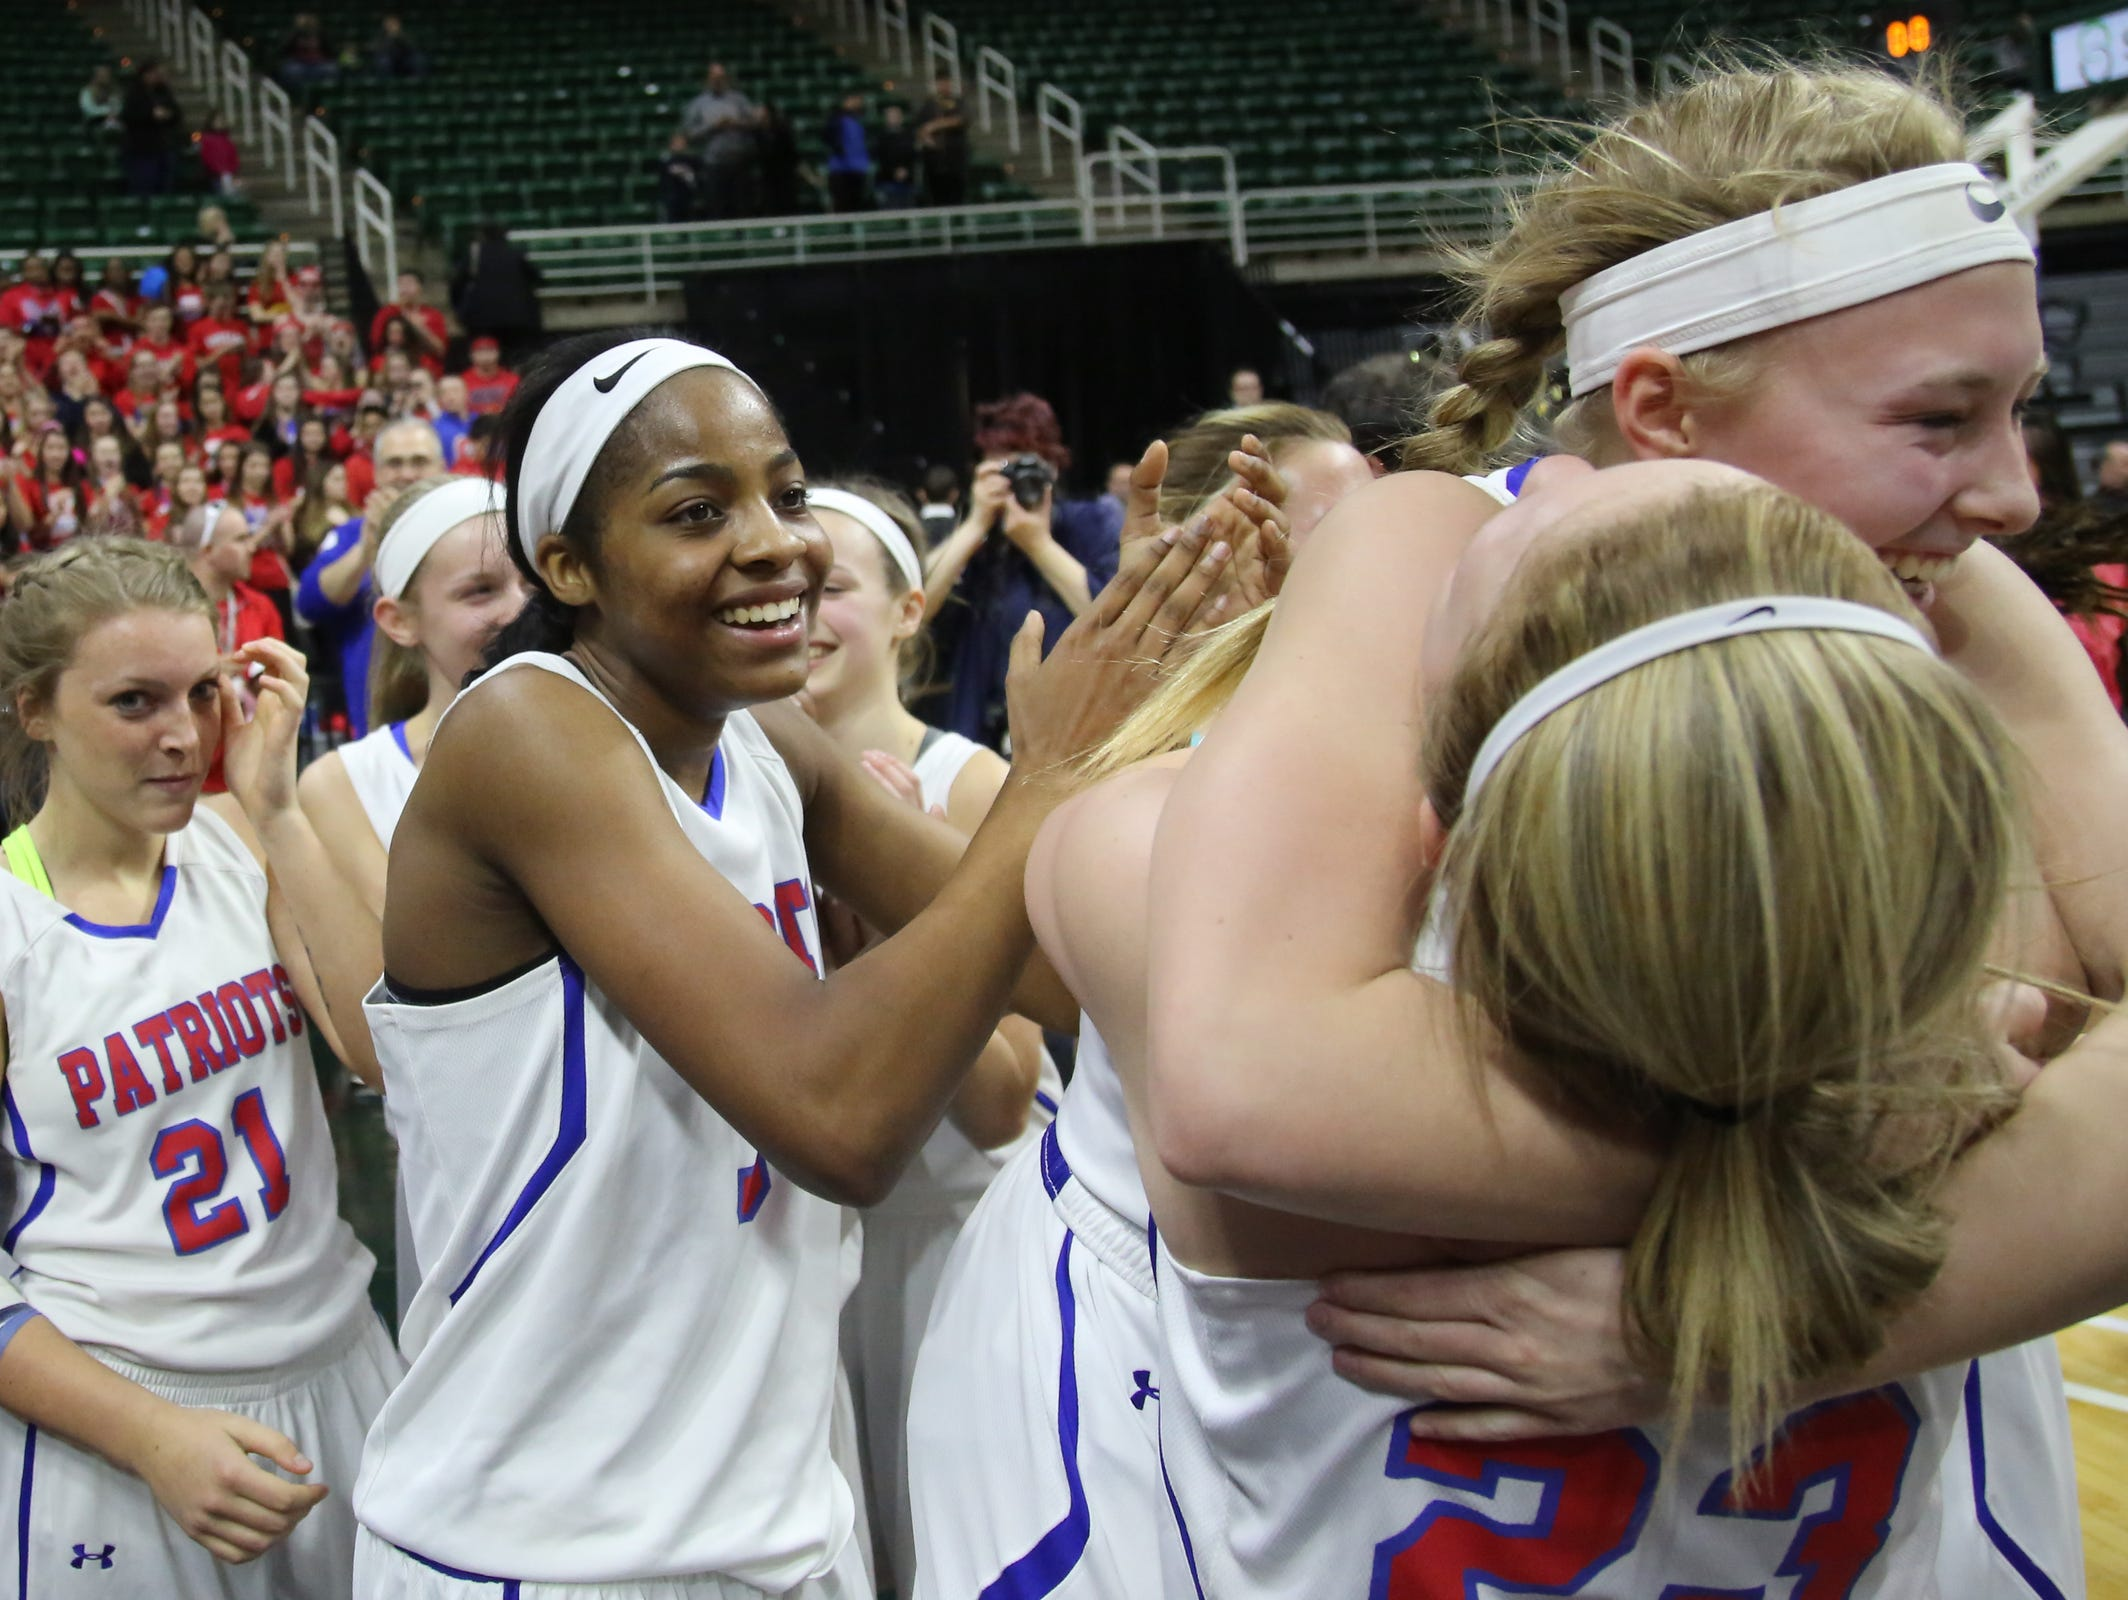 Warren Cousino's Aubrey Holman, Kierra Fletcher, and teammates celebrate defeating Hudsonville 60-45, during the MHSAA girls basketball Class A game 2 semifinals at the Breslin Center in East Lansing, Mich. on Friday, March 18, 2016.